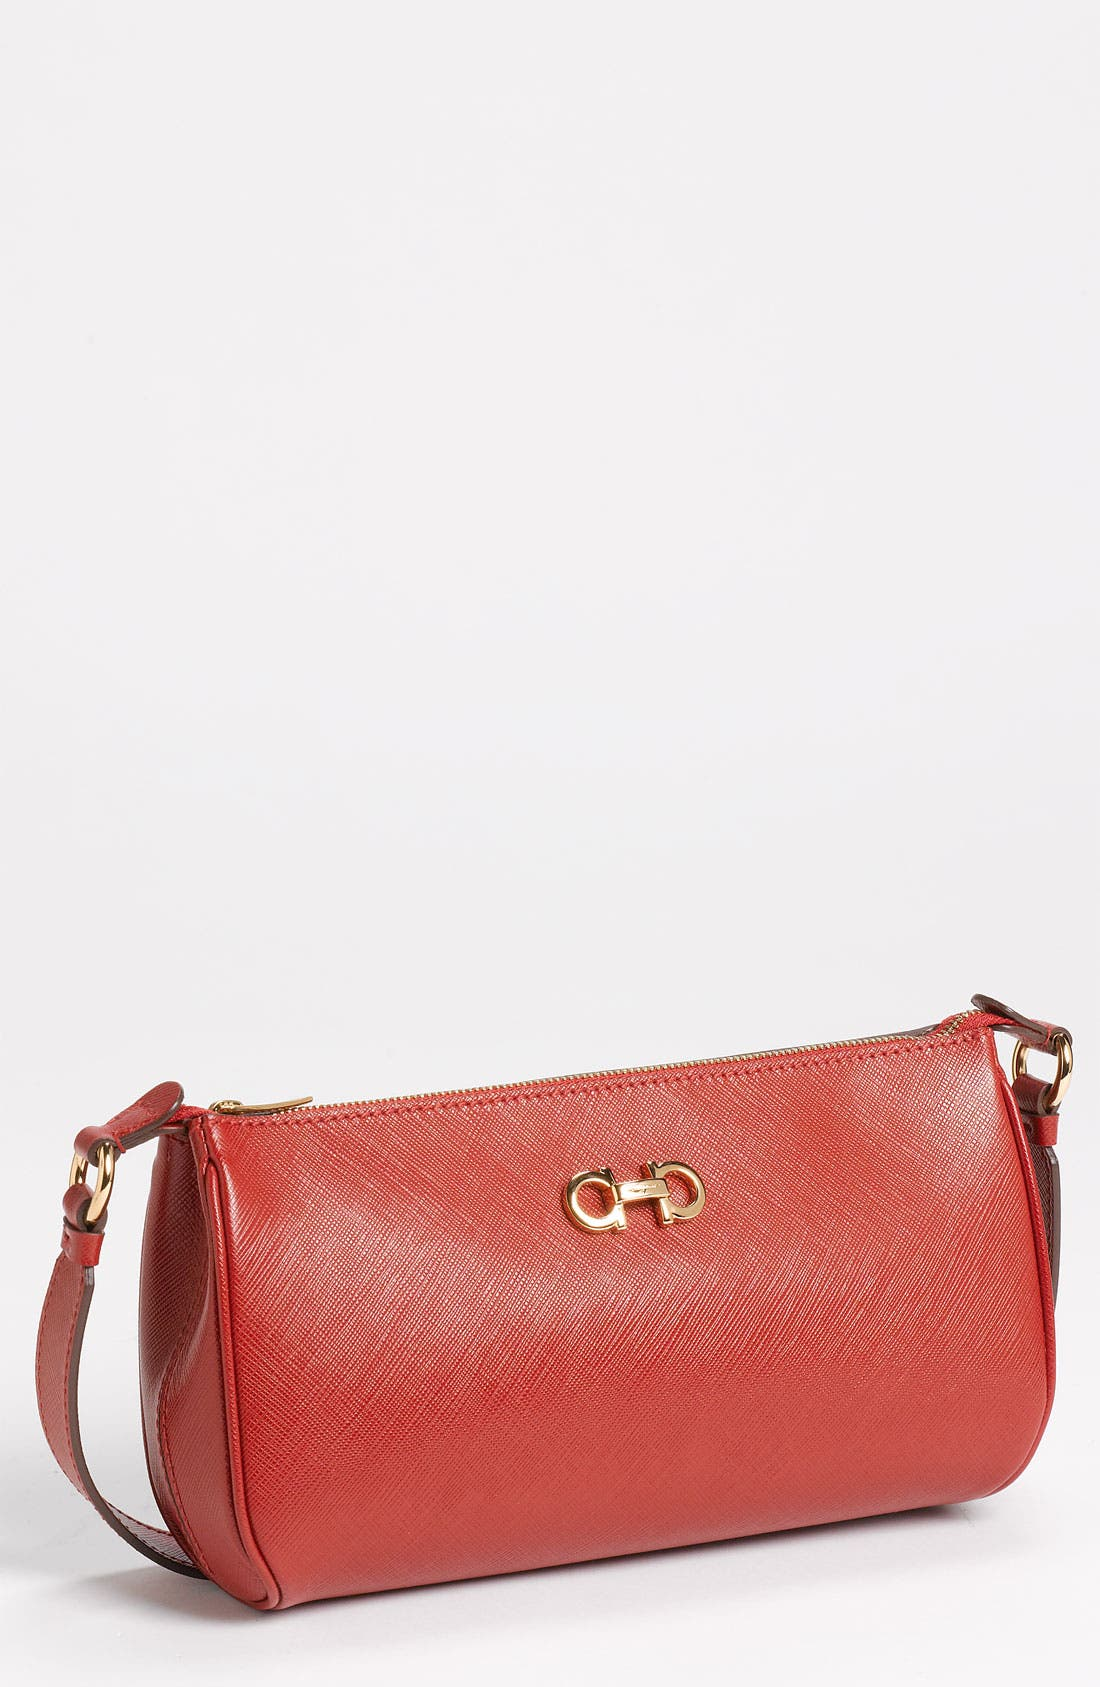 Main Image - Salvatore Ferragamo 'Icona Lisetta' Shoulder Bag